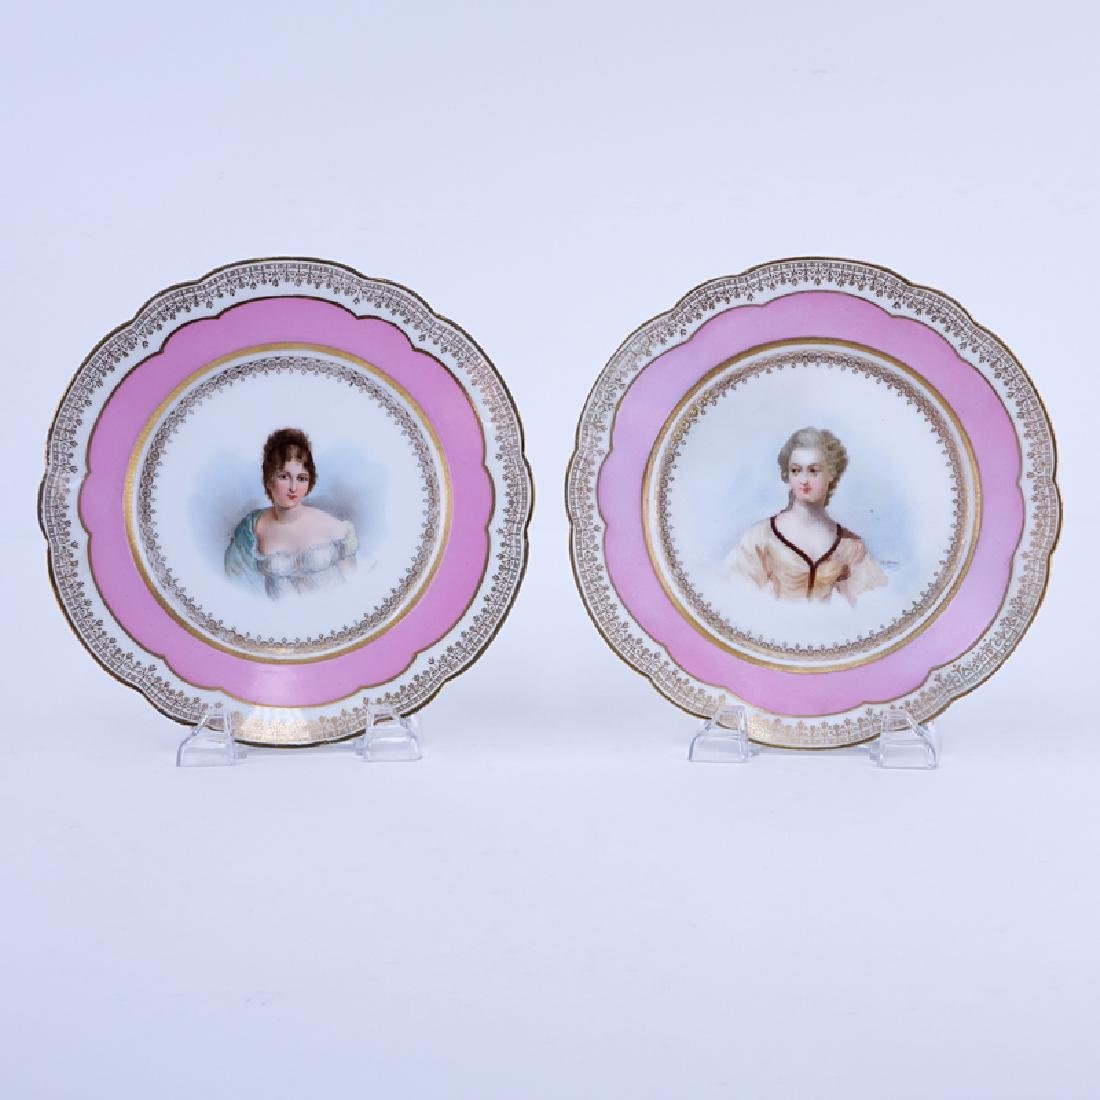 Pair of 19/20th Century Sevres Porcelain Cabinet